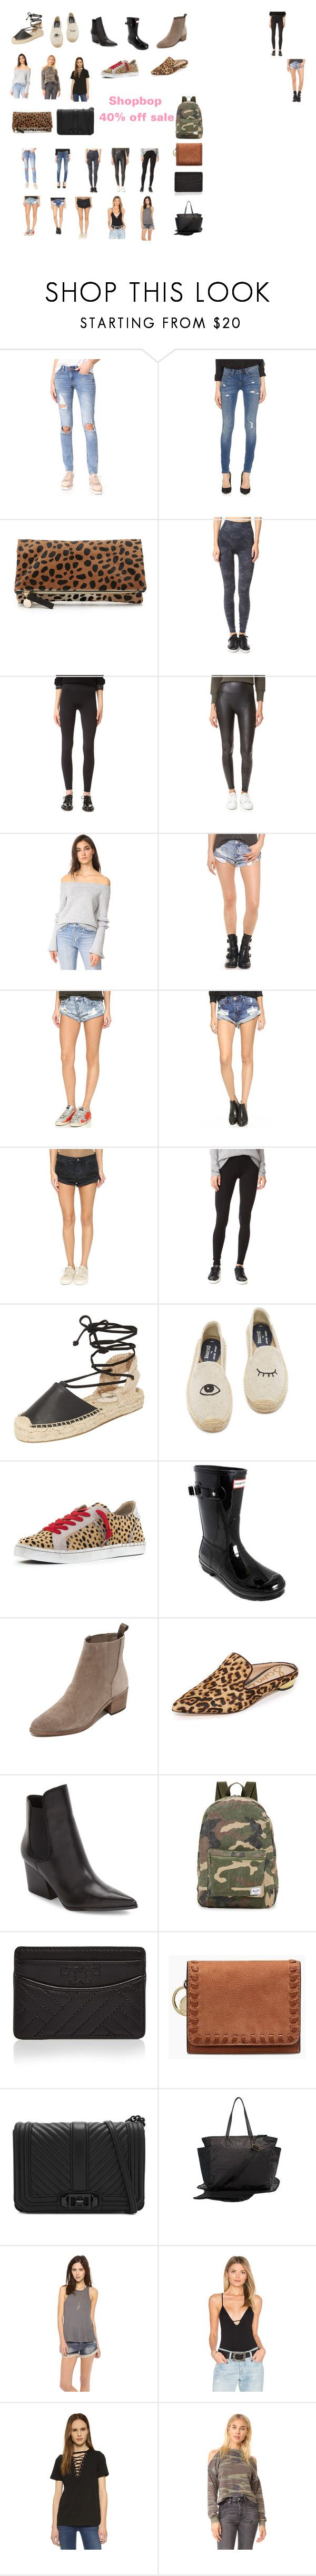 shopbop 40% off sale by chris-n-court-carnes on Polyvore featuring After Market, Z Supply, Glamorous, Free People, Splendid, OneTeaspoon, SPANX, Blank Denim, Dolce Vita and Soludos